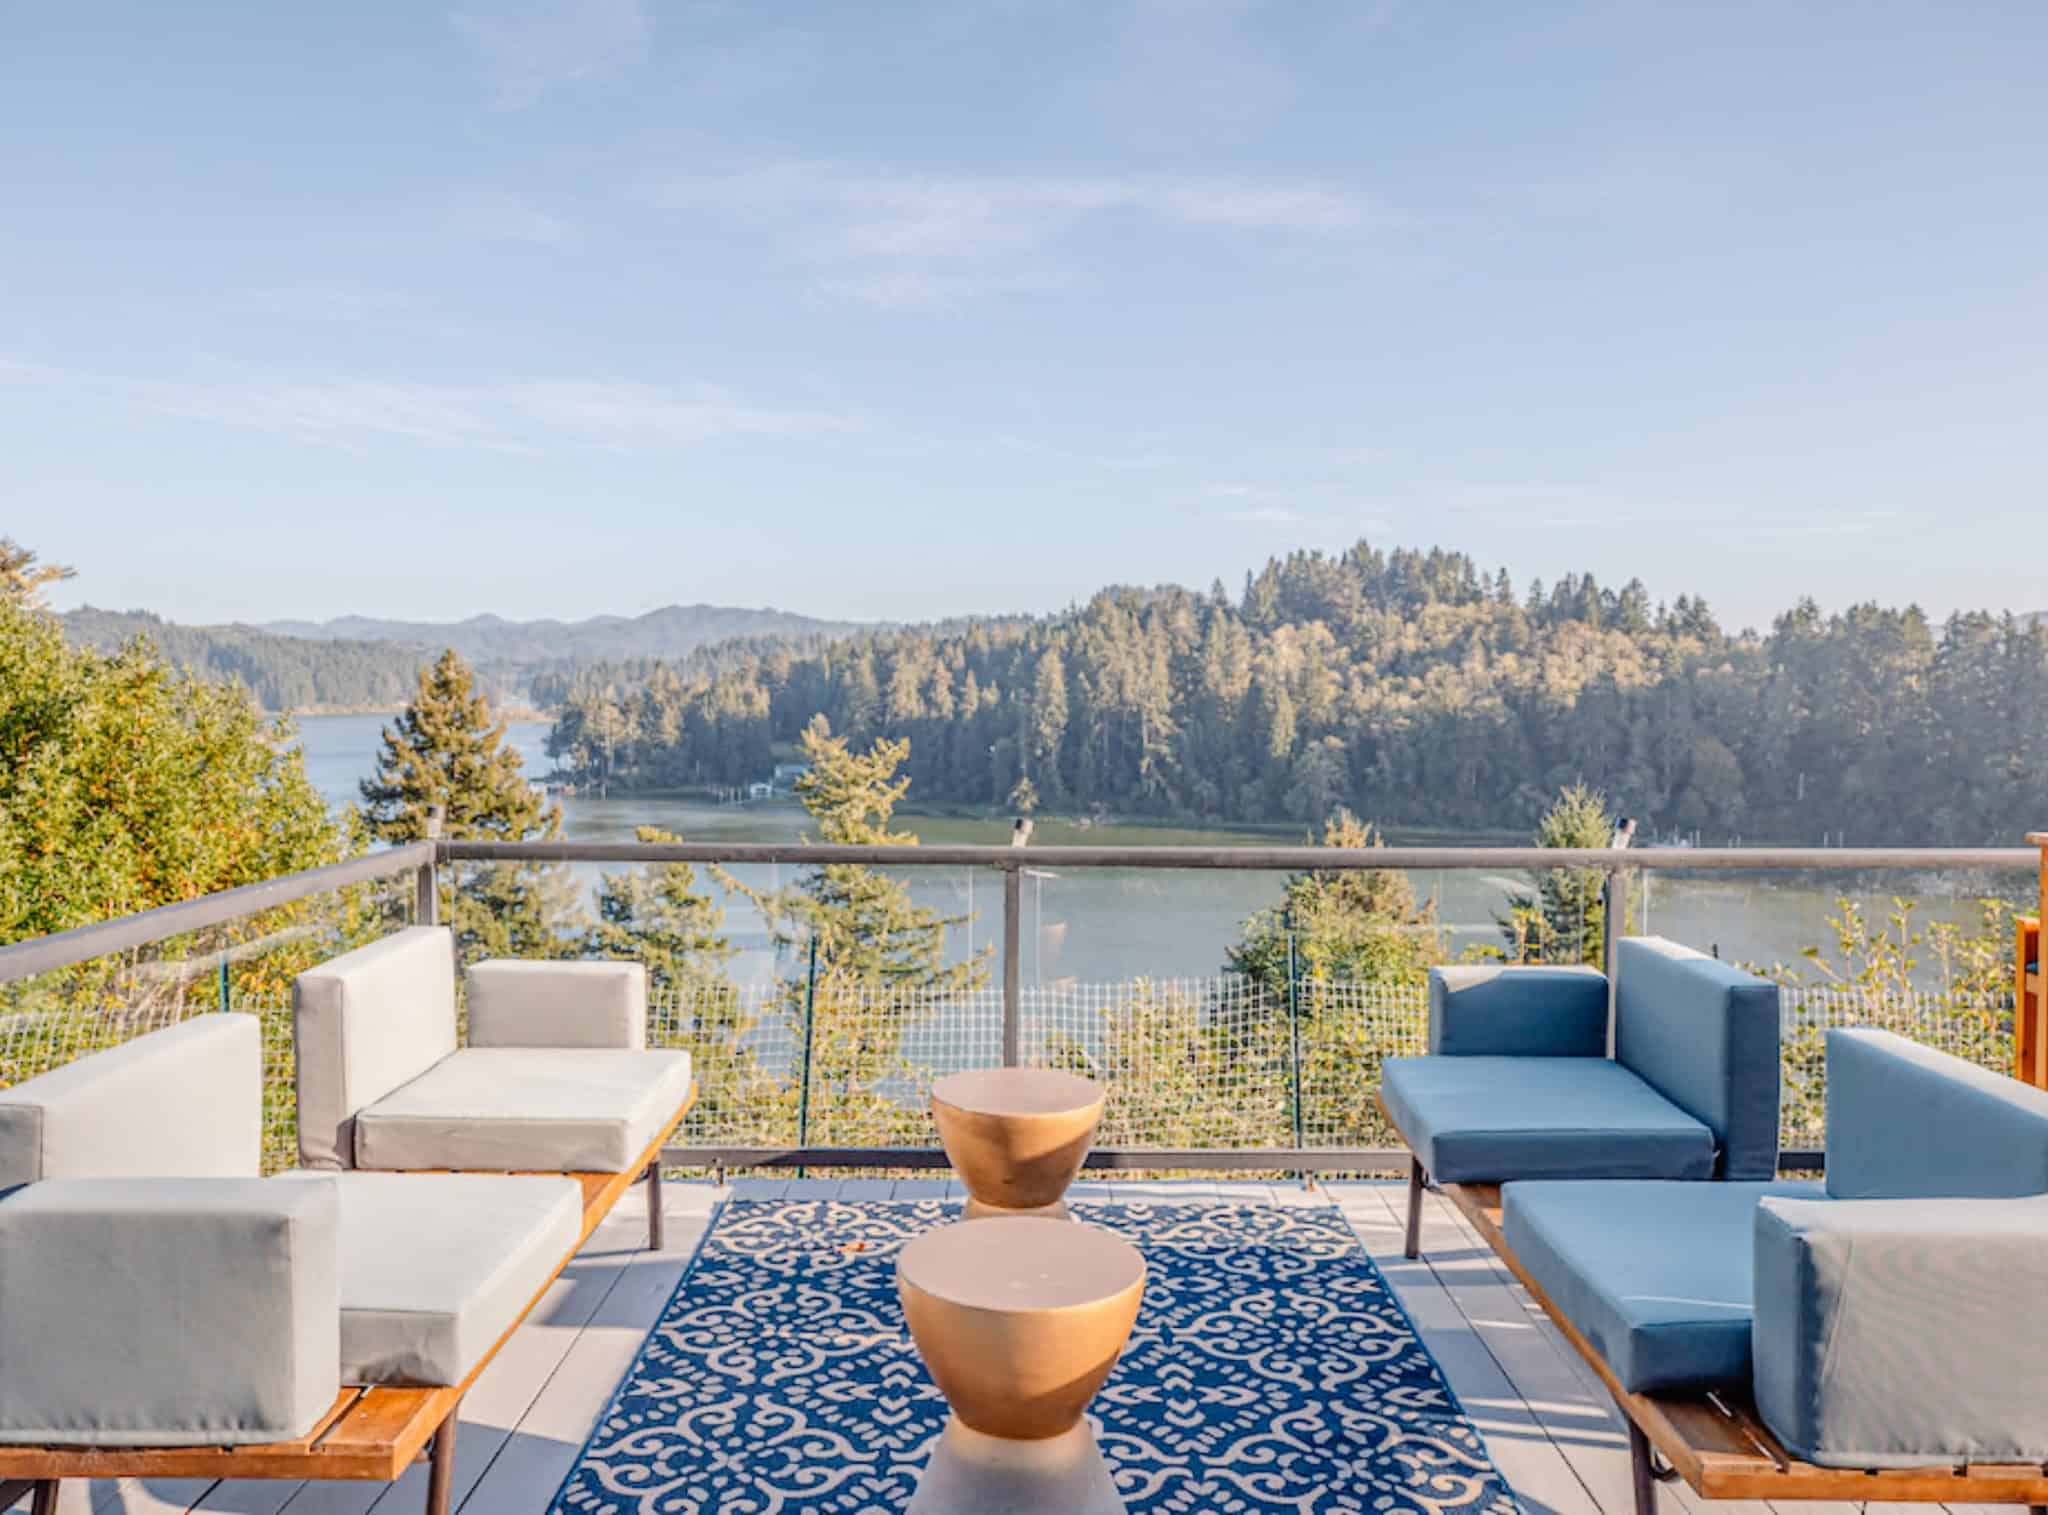 luxury modern chairs on a deck overlooking a lake